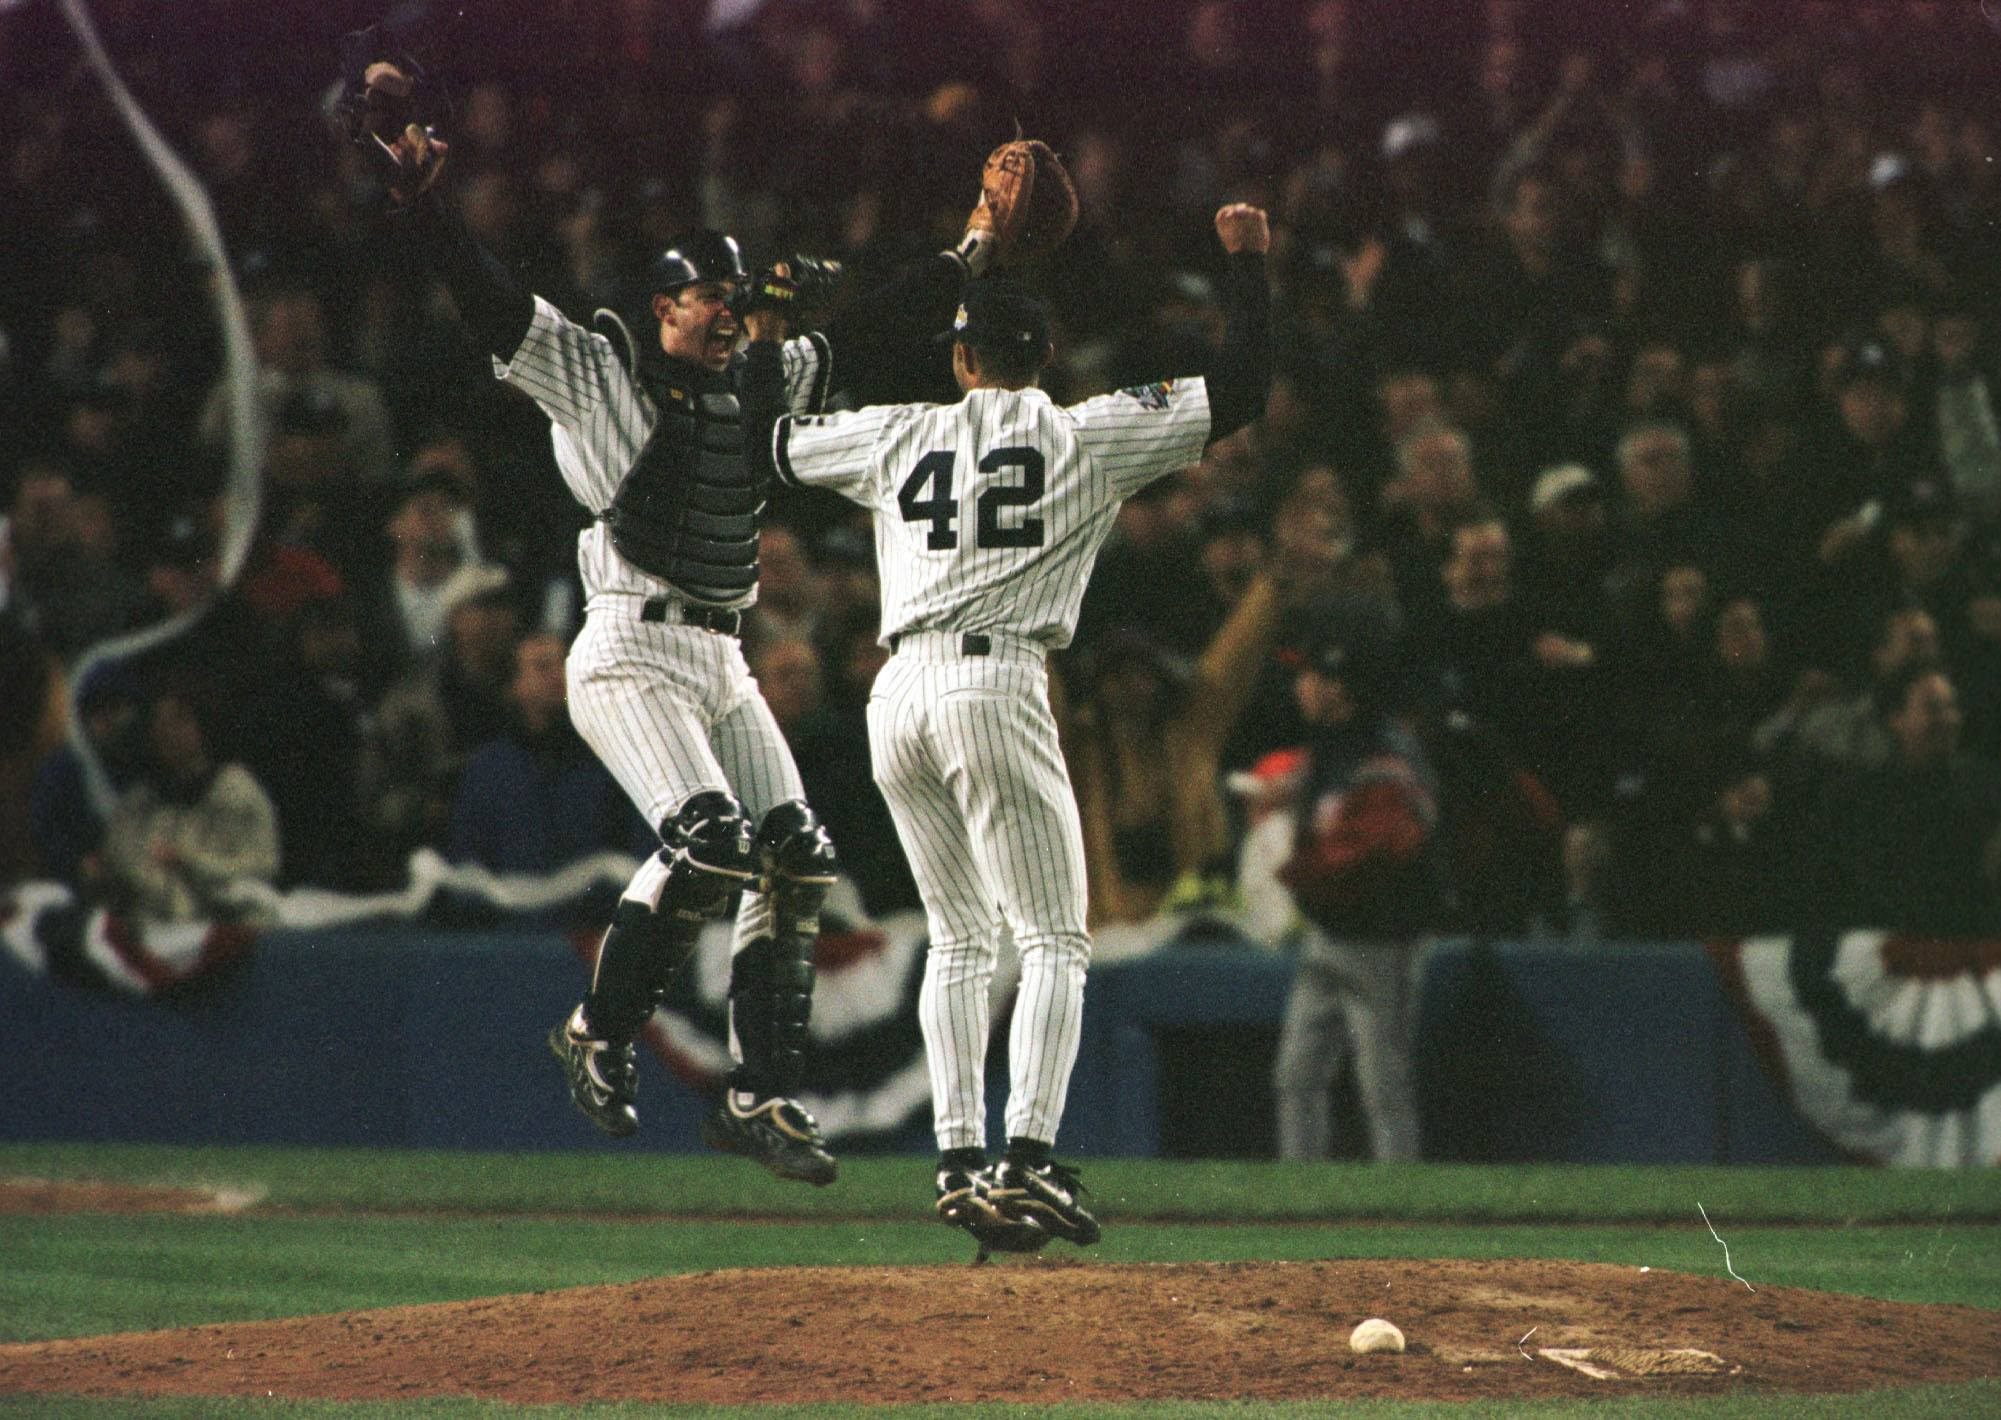 Catcher Jorge Posada of the New York Yankees leaps into the air with Mariano Rivera